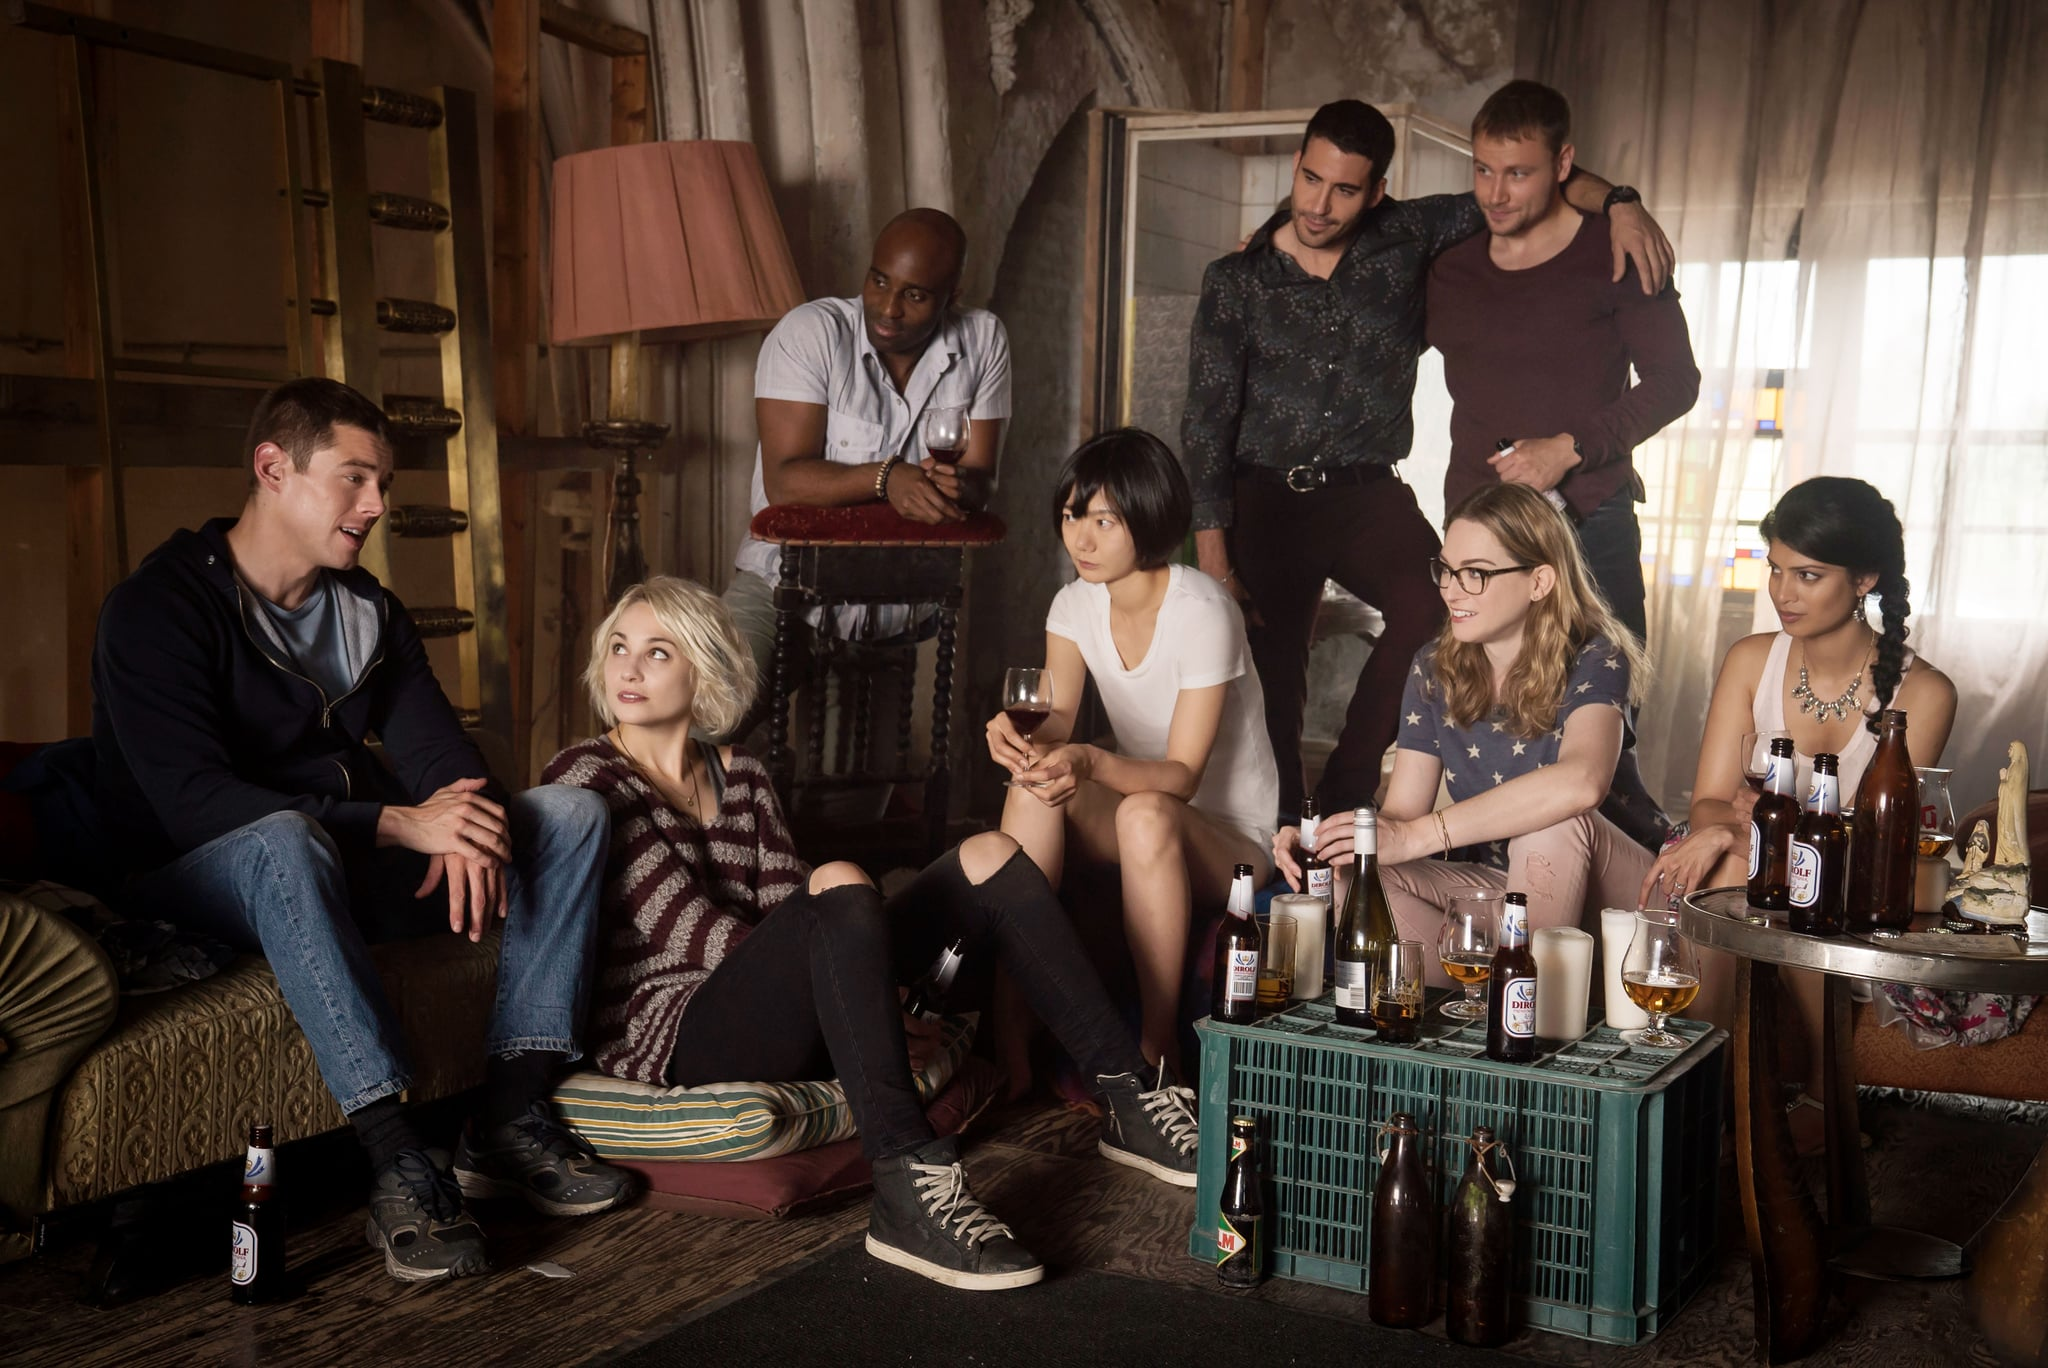 SENSE8, Brian J. Smith, Tuppence Middleton, Toby Onwumere, Bae Doona, Miguel Angel Silvestre, Max Riemelt, Jamie Clayton, Tena Desae in 'Obligate Mutualisms', (Season 2, episode 203, aired May 5, 2017), ph: Murray Close / Netflix / courtesy Everett Collection